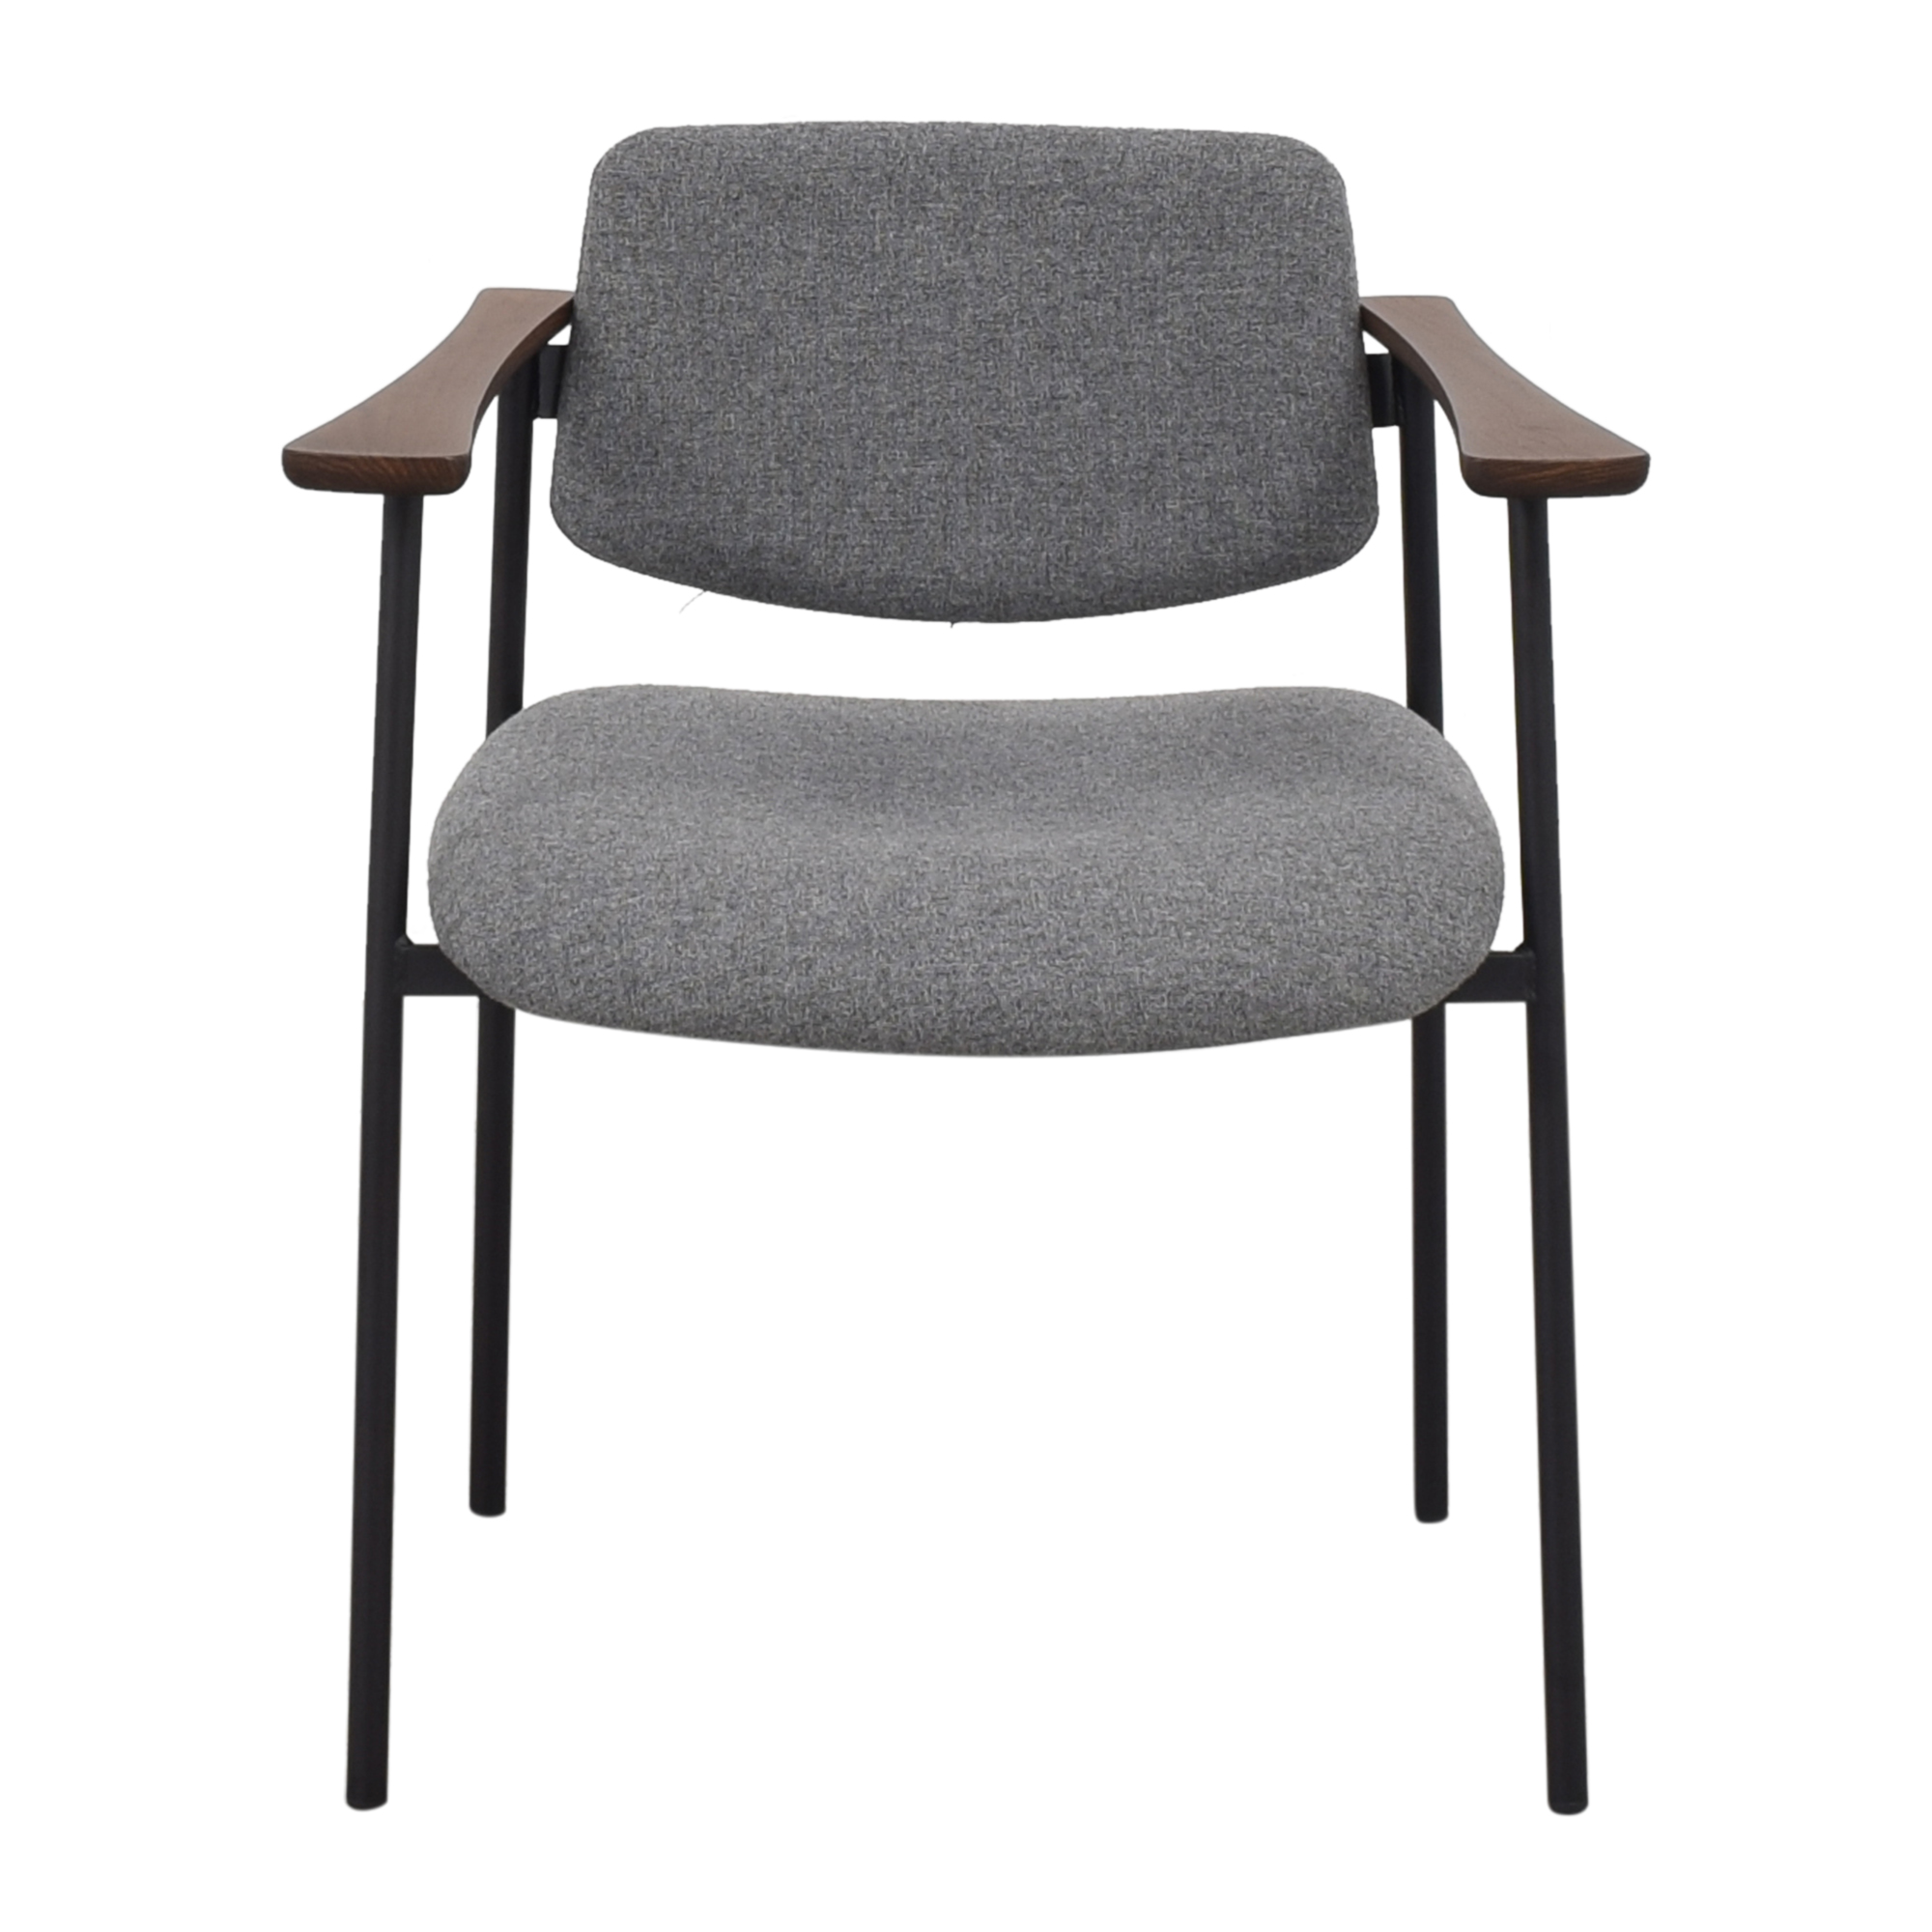 CB2 CB2 Warren Chair ct